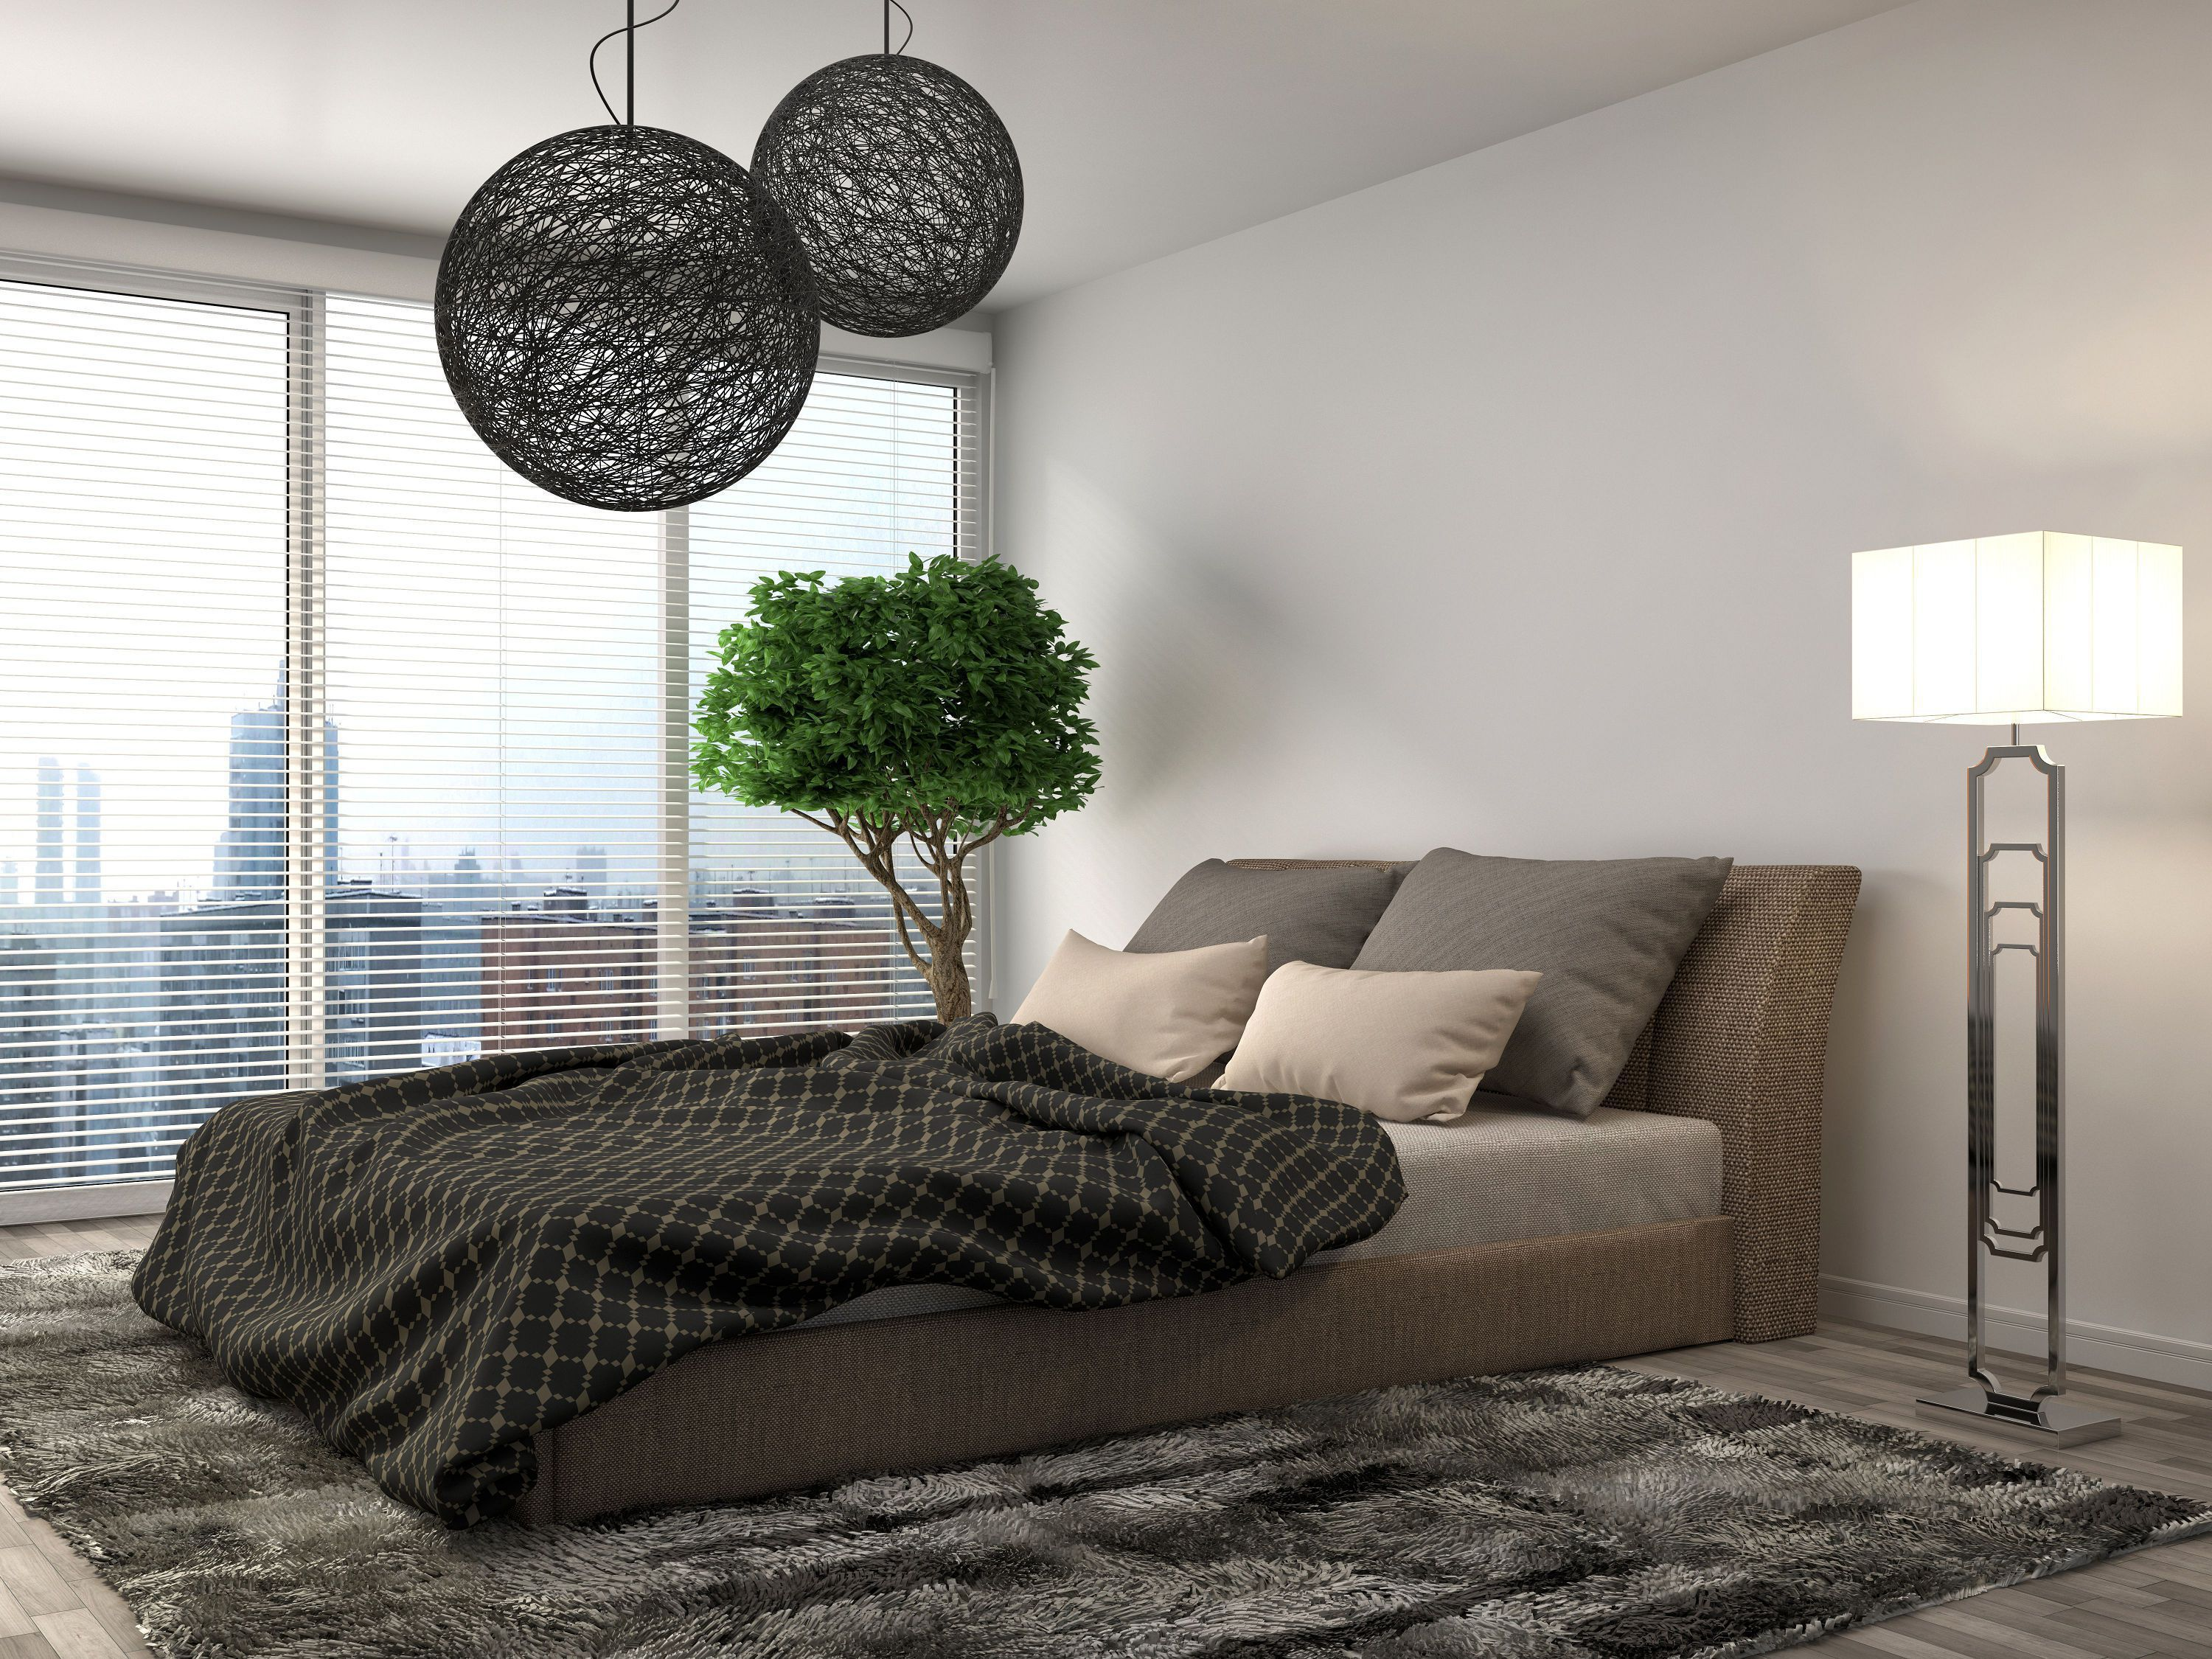 Bedroom Interior 3d Illustration